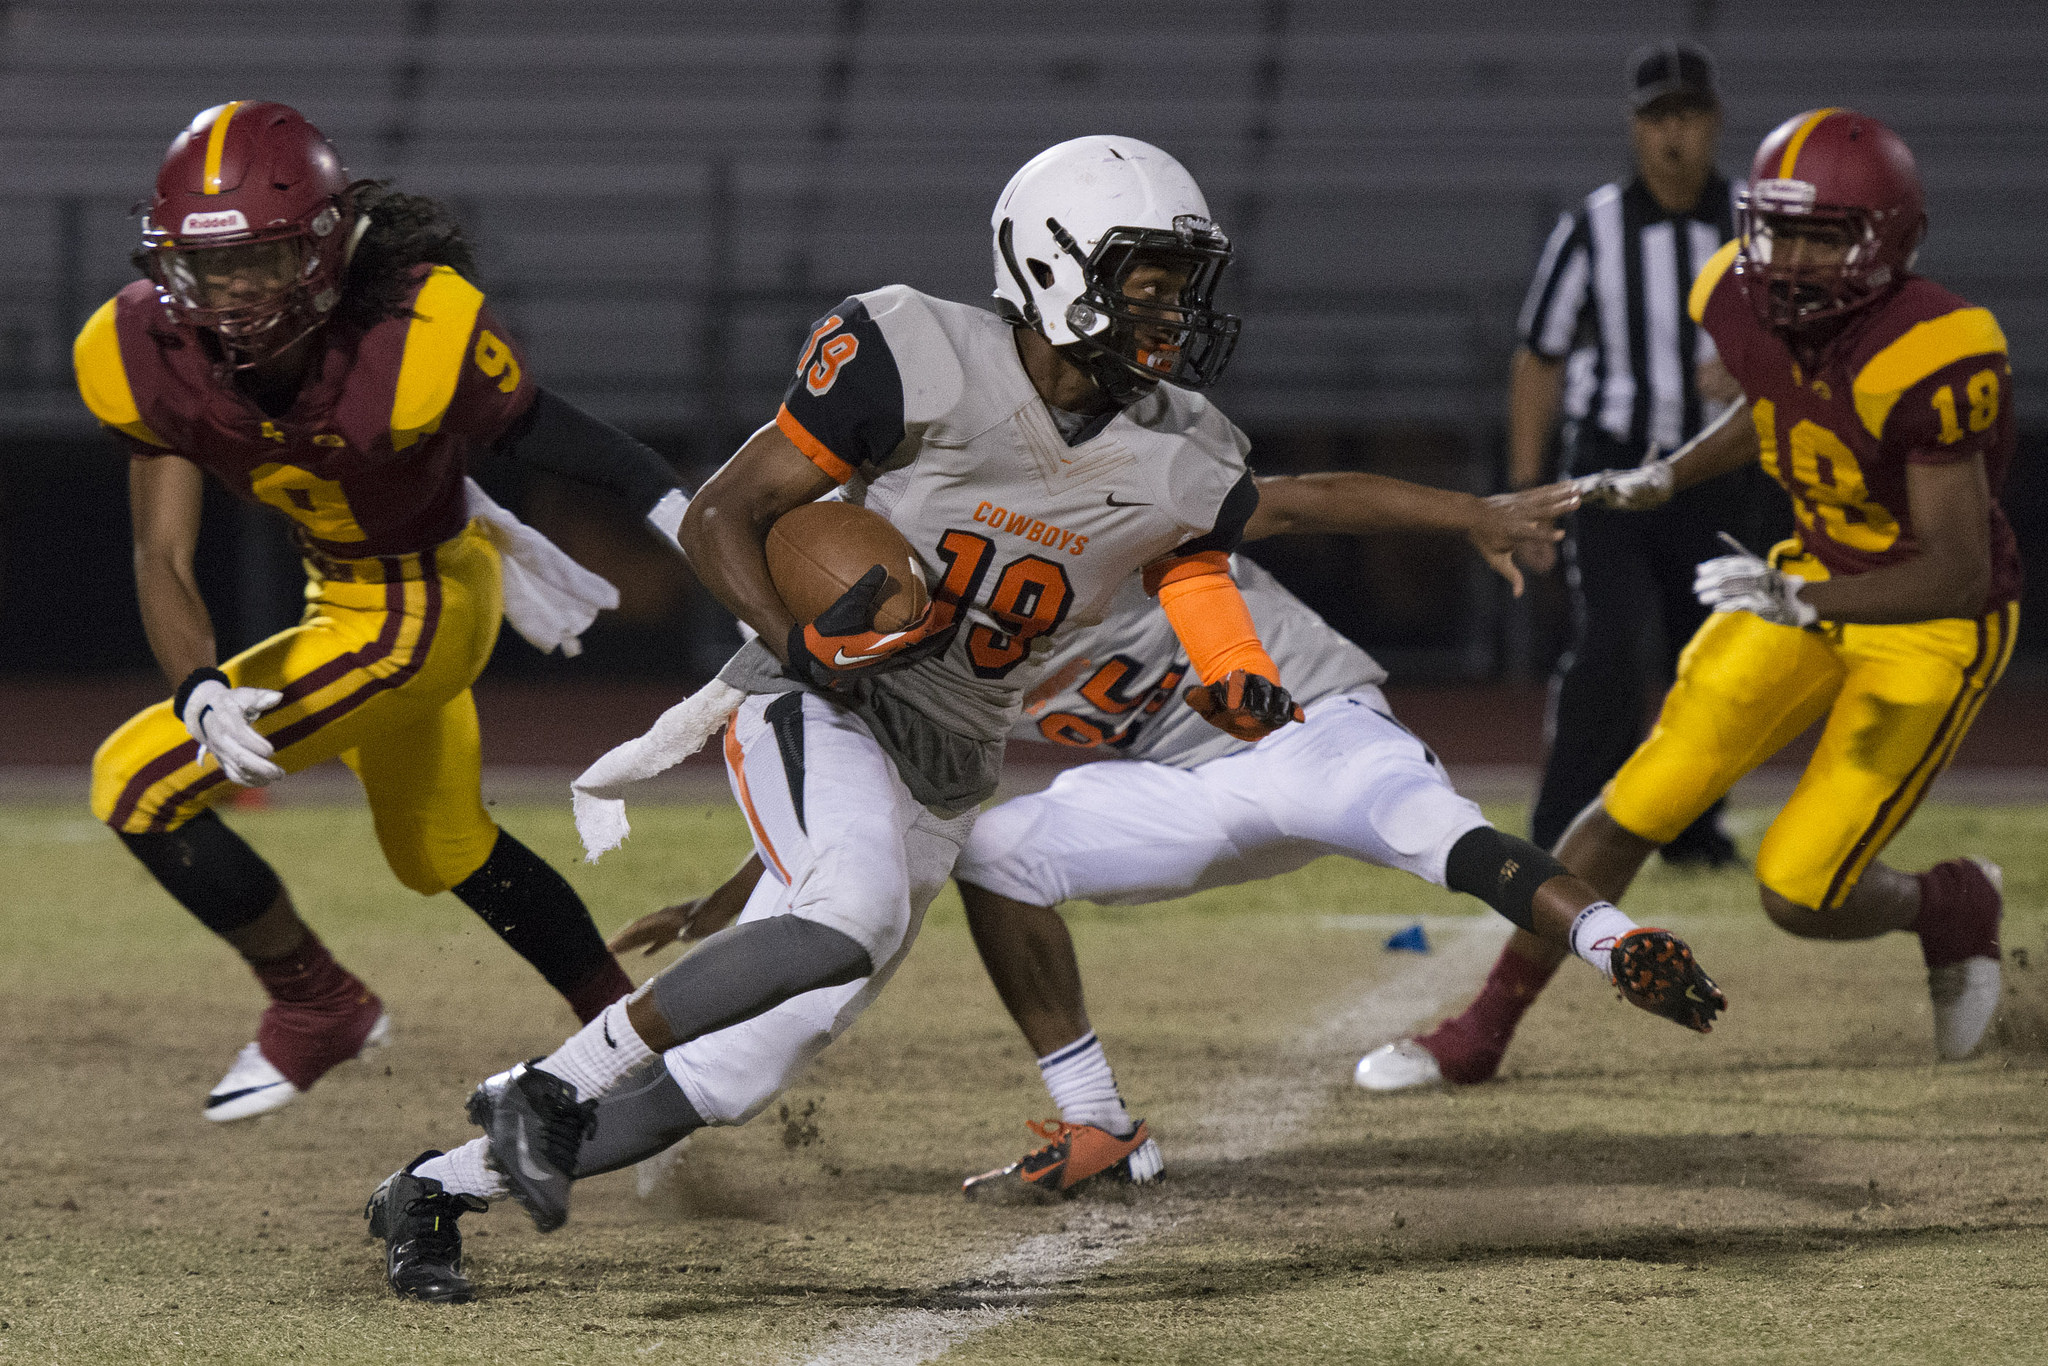 Chaparral's Tyray Collins (19) runs with the ball during a football game at Del Sol in Las Vegas, Friday, Sept. 23, 2016. Jason Ogulnik/Las Vegas Review-Journal